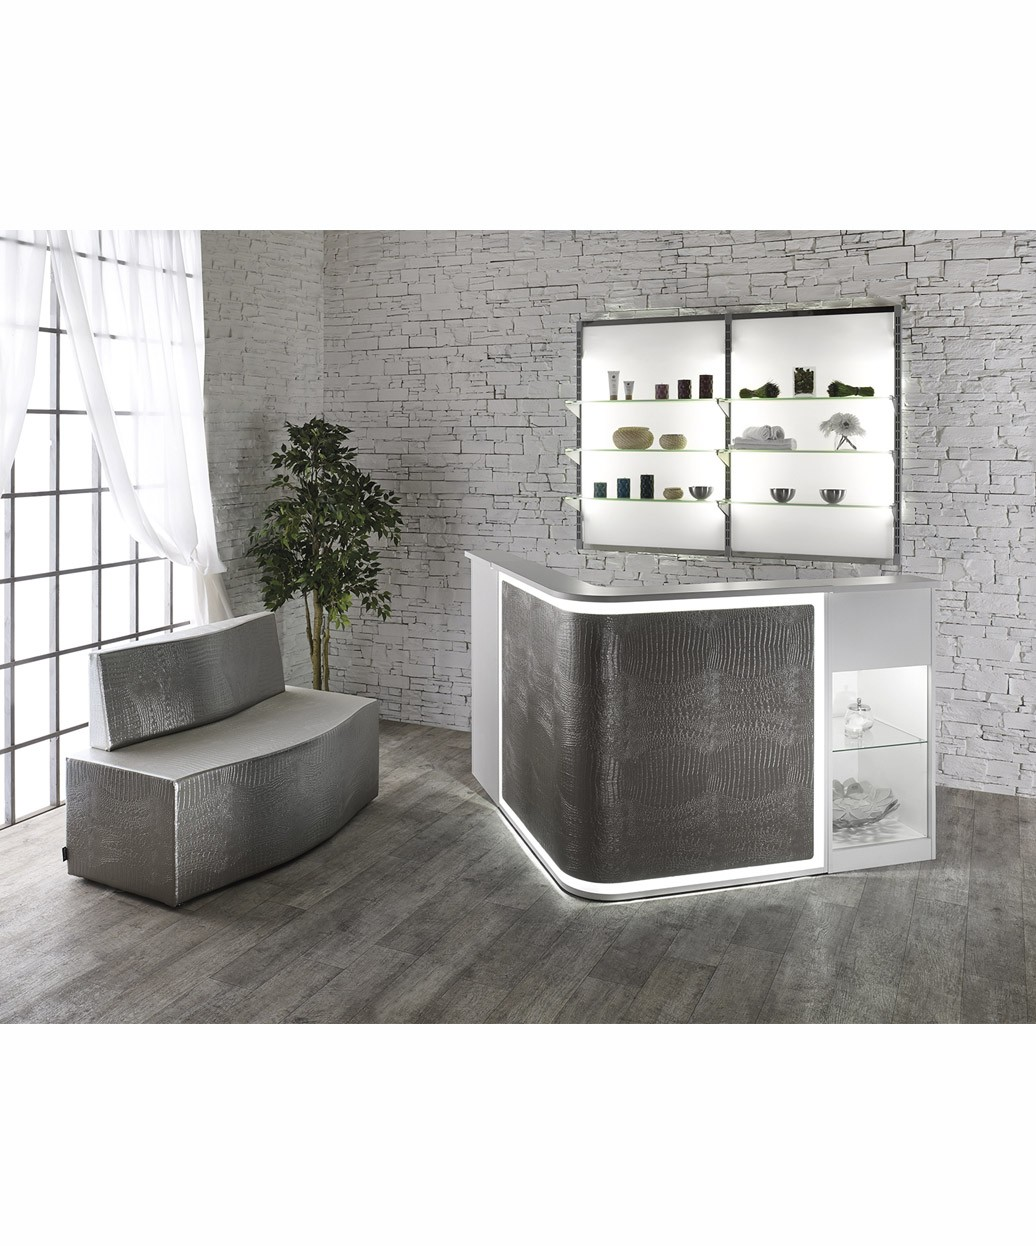 Salon Ambience Rd216 Smart Italian Reception Desk W Led Light